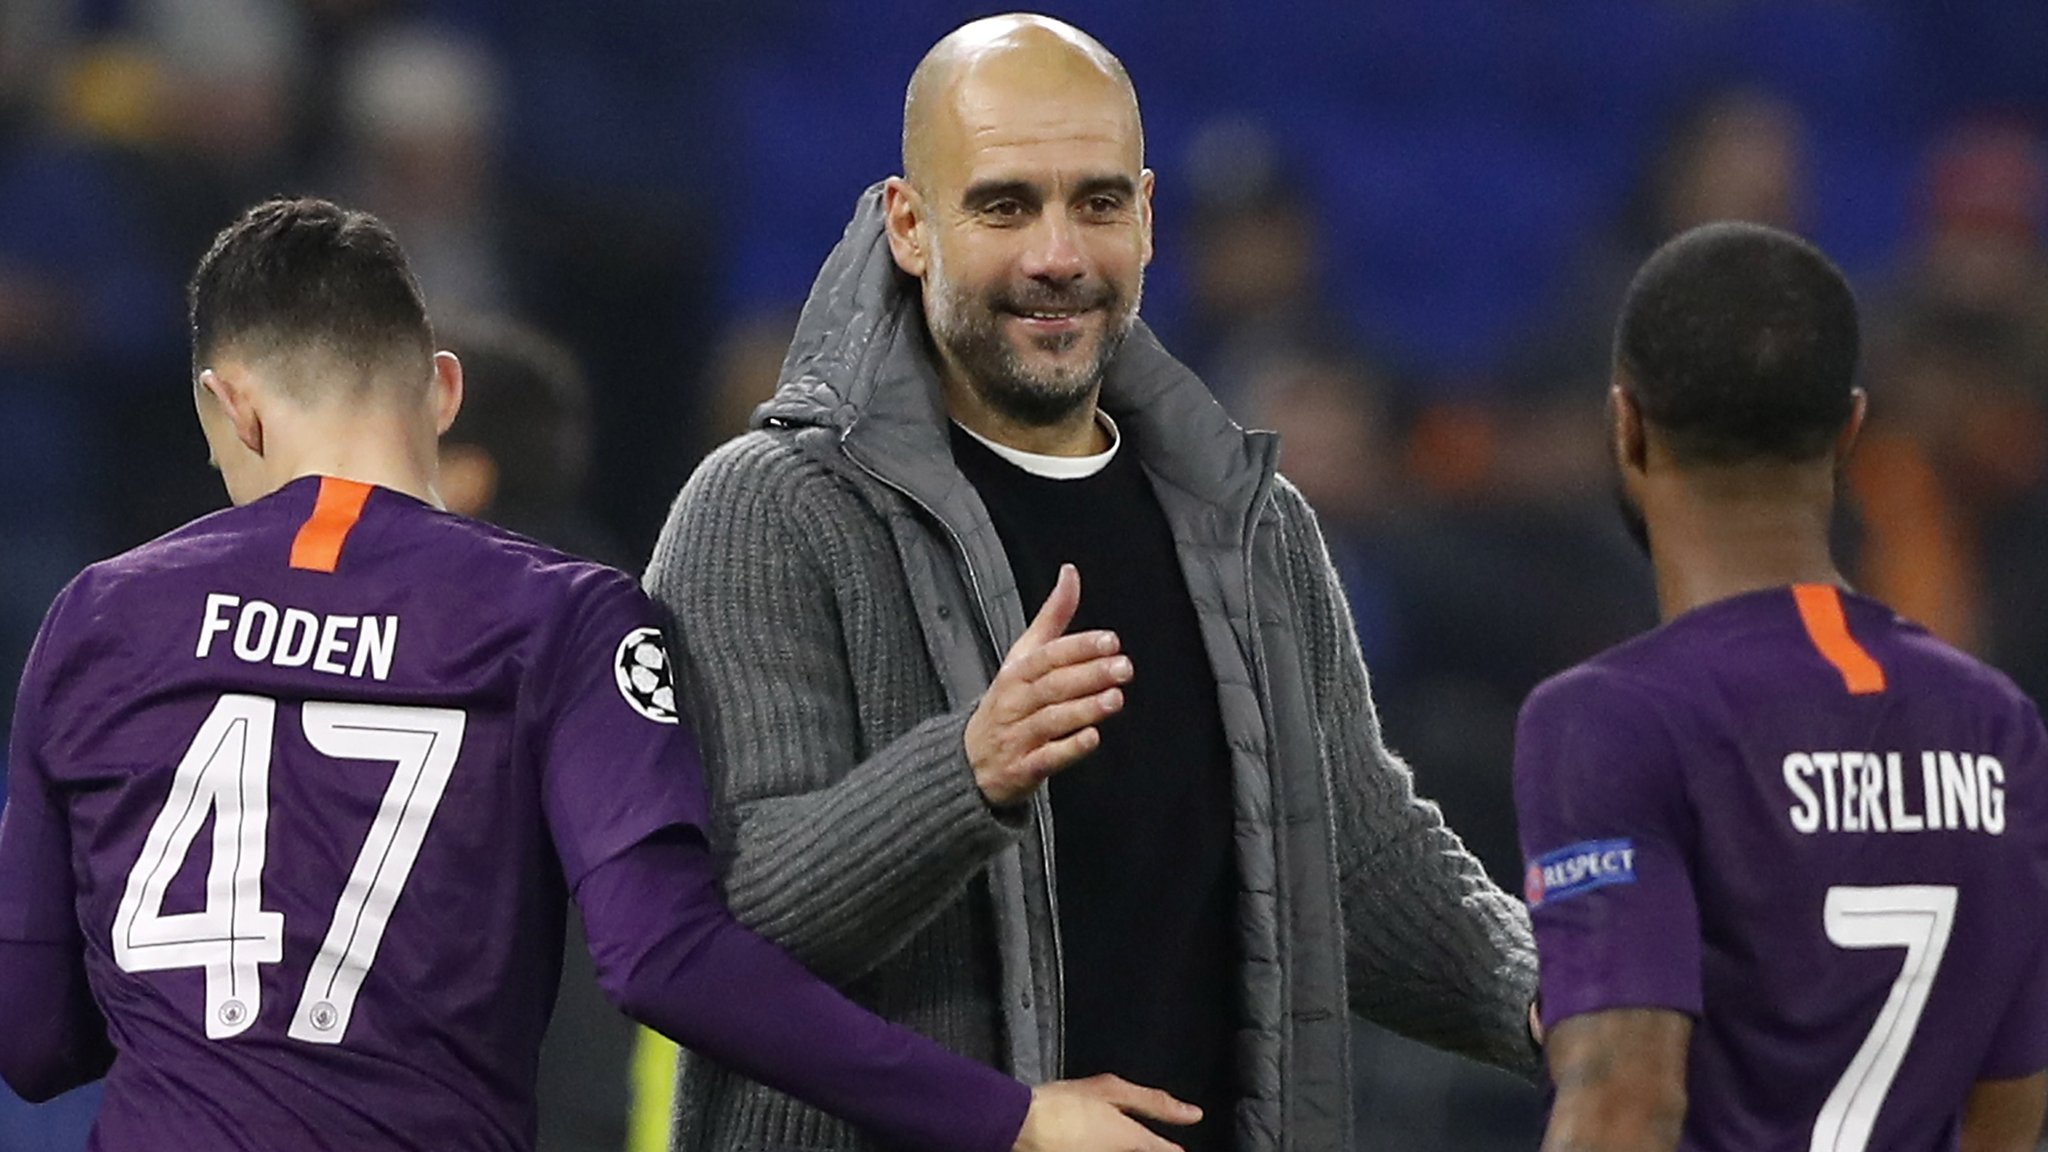 Lyon one of toughest teams we've ever faced - Guardiola